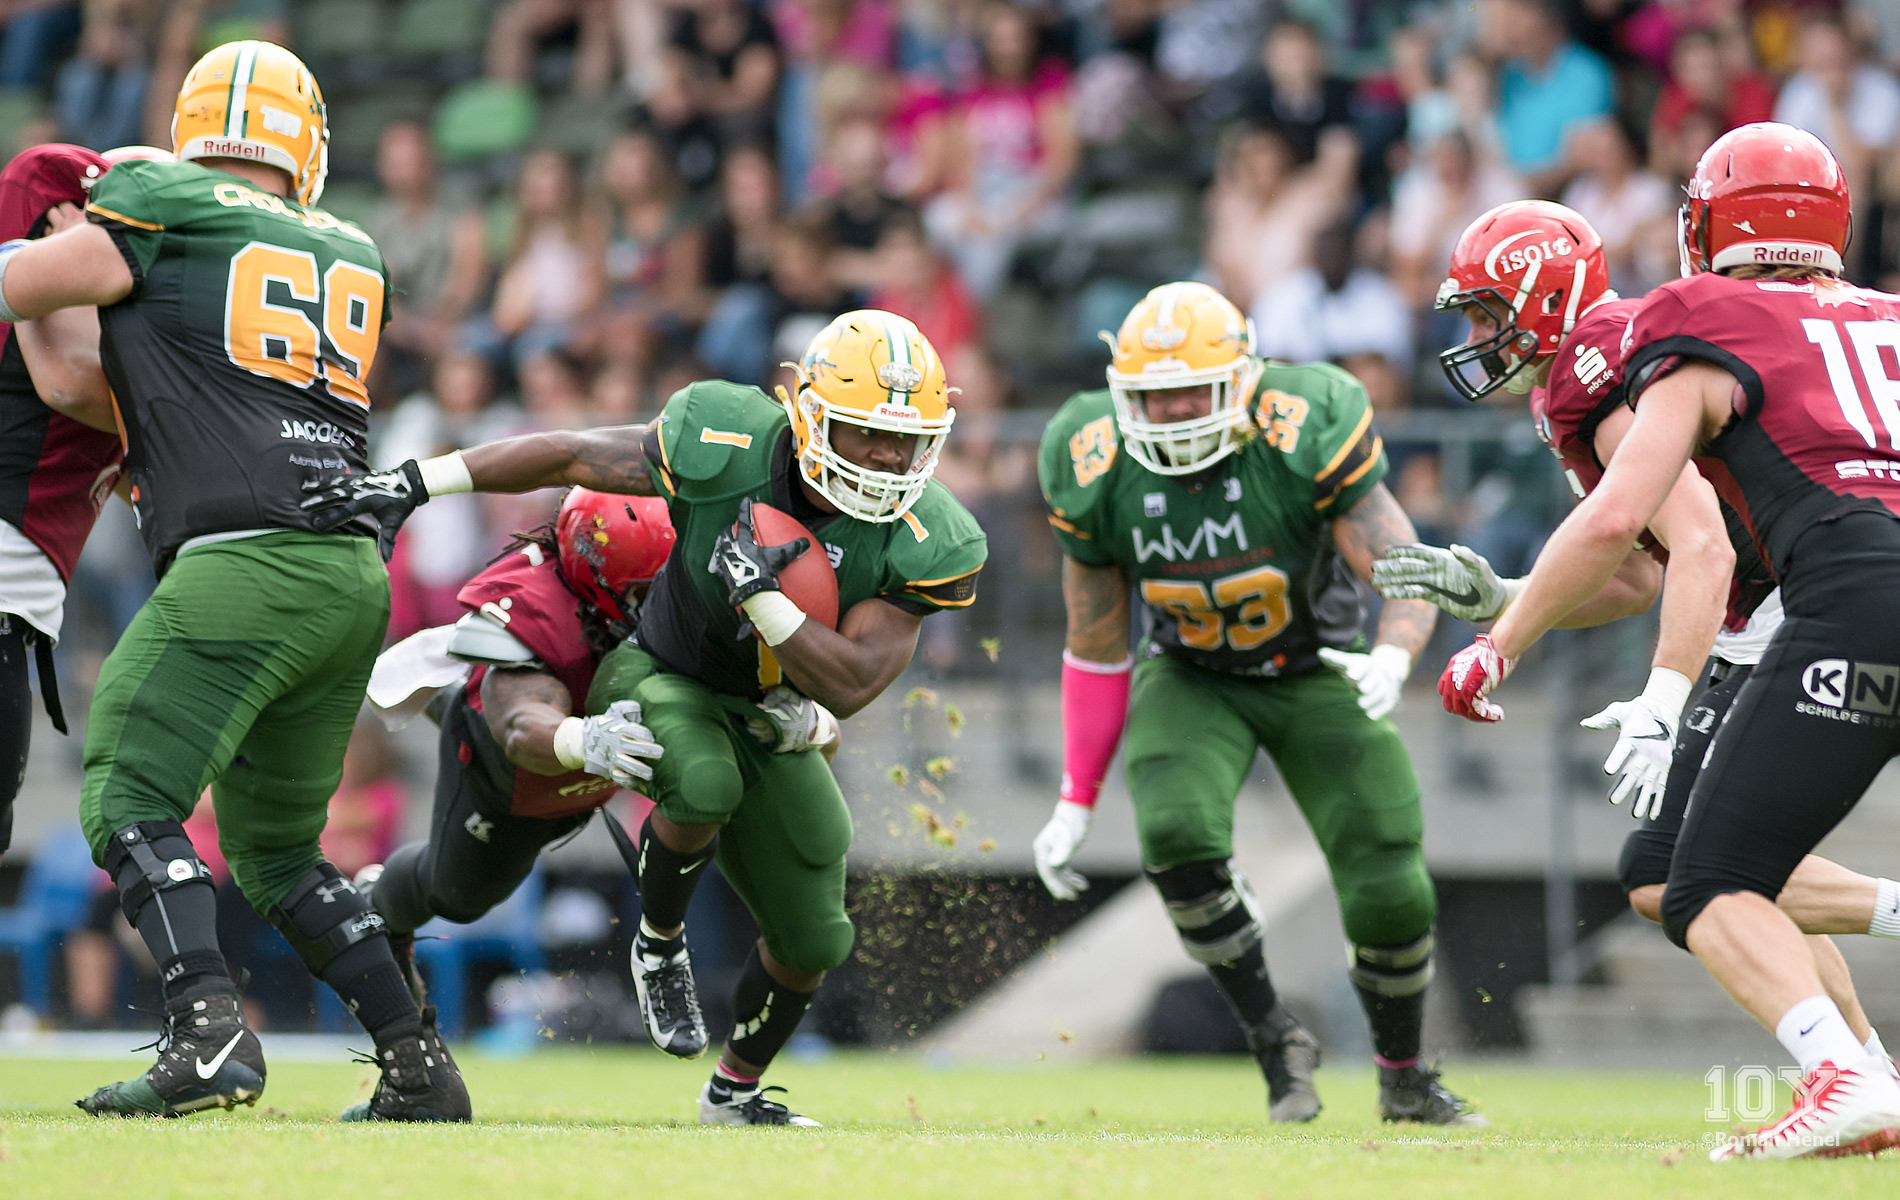 Cologne Crocodiles vs. Potsdam Royals